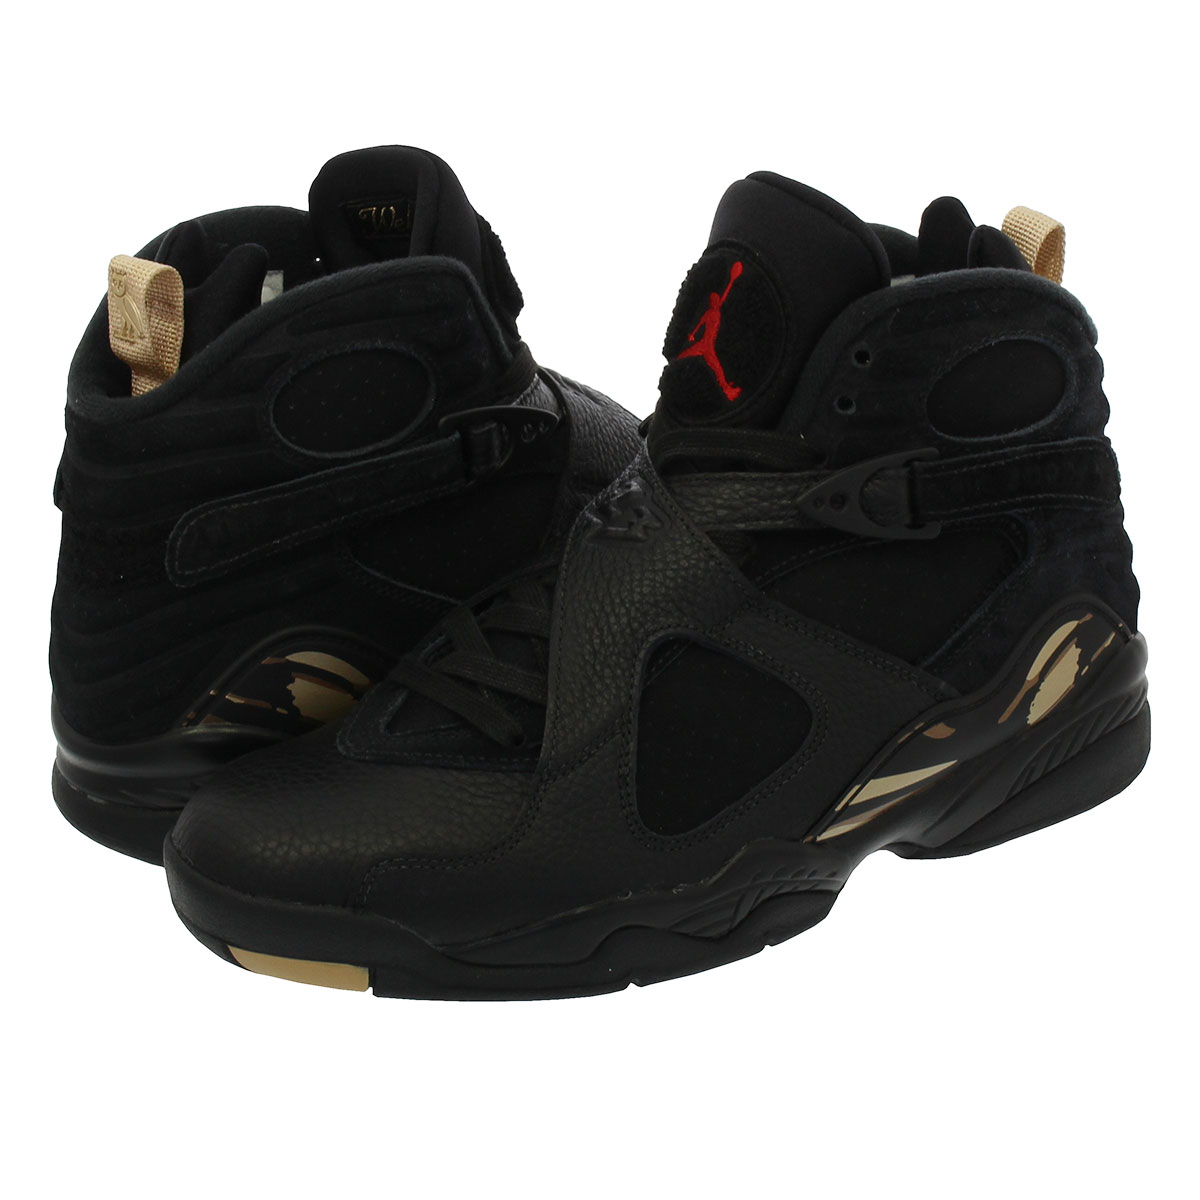 fe28bc88075094 NIKE AIR JORDAN 8 RETRO Nike Air Jordan 8 nostalgic BLACK METALLIC  GOLD VARSITY RED